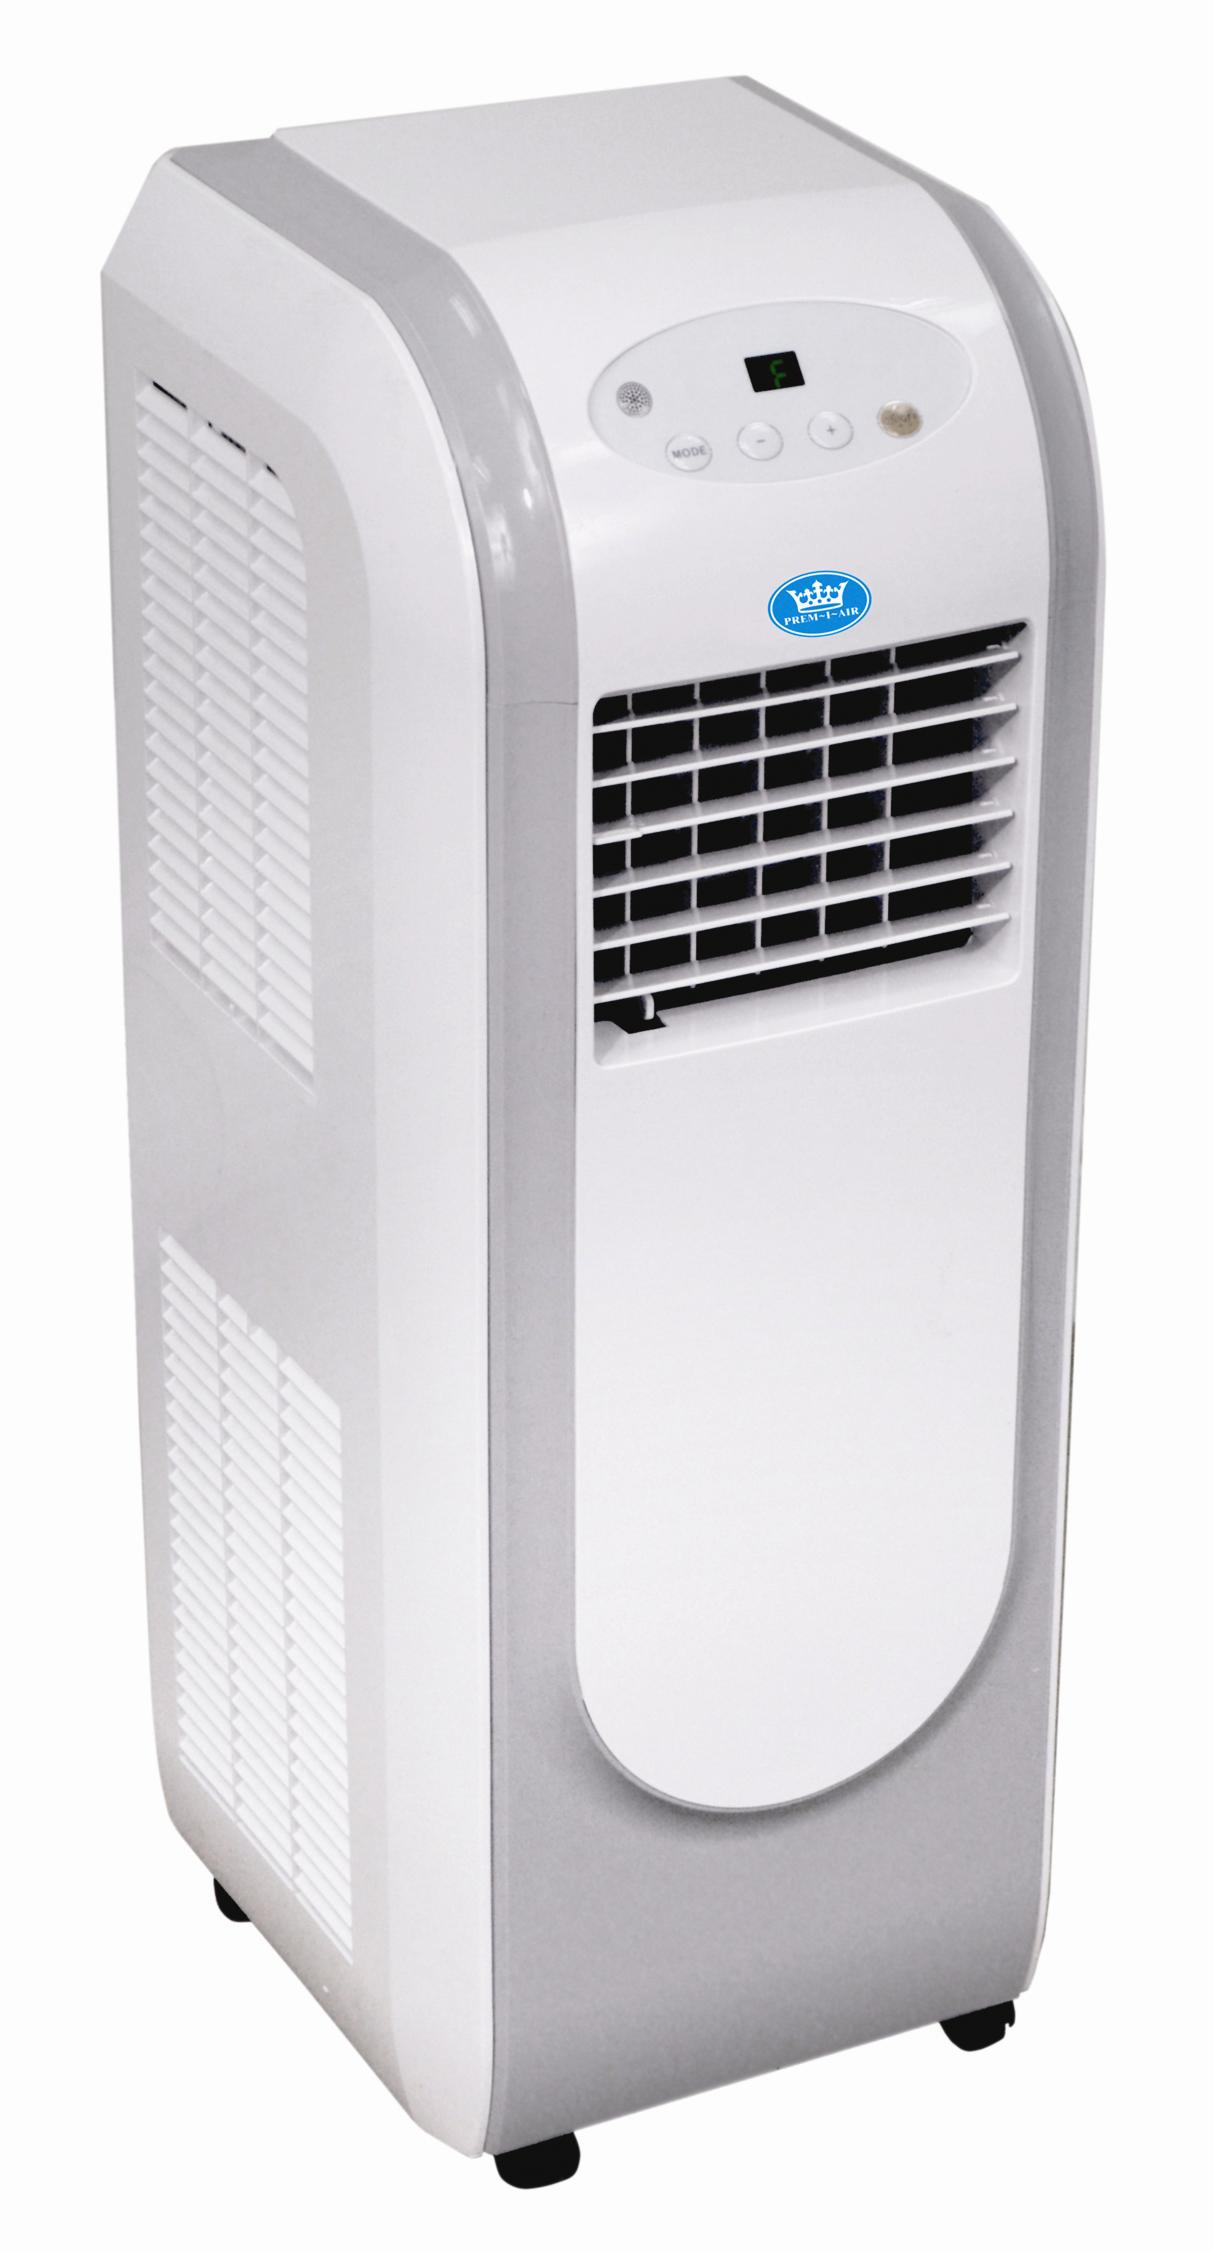 Prem-I-Air ERH1614 8,000btu portable air conditioning unit Aircon247.com | portable air ...